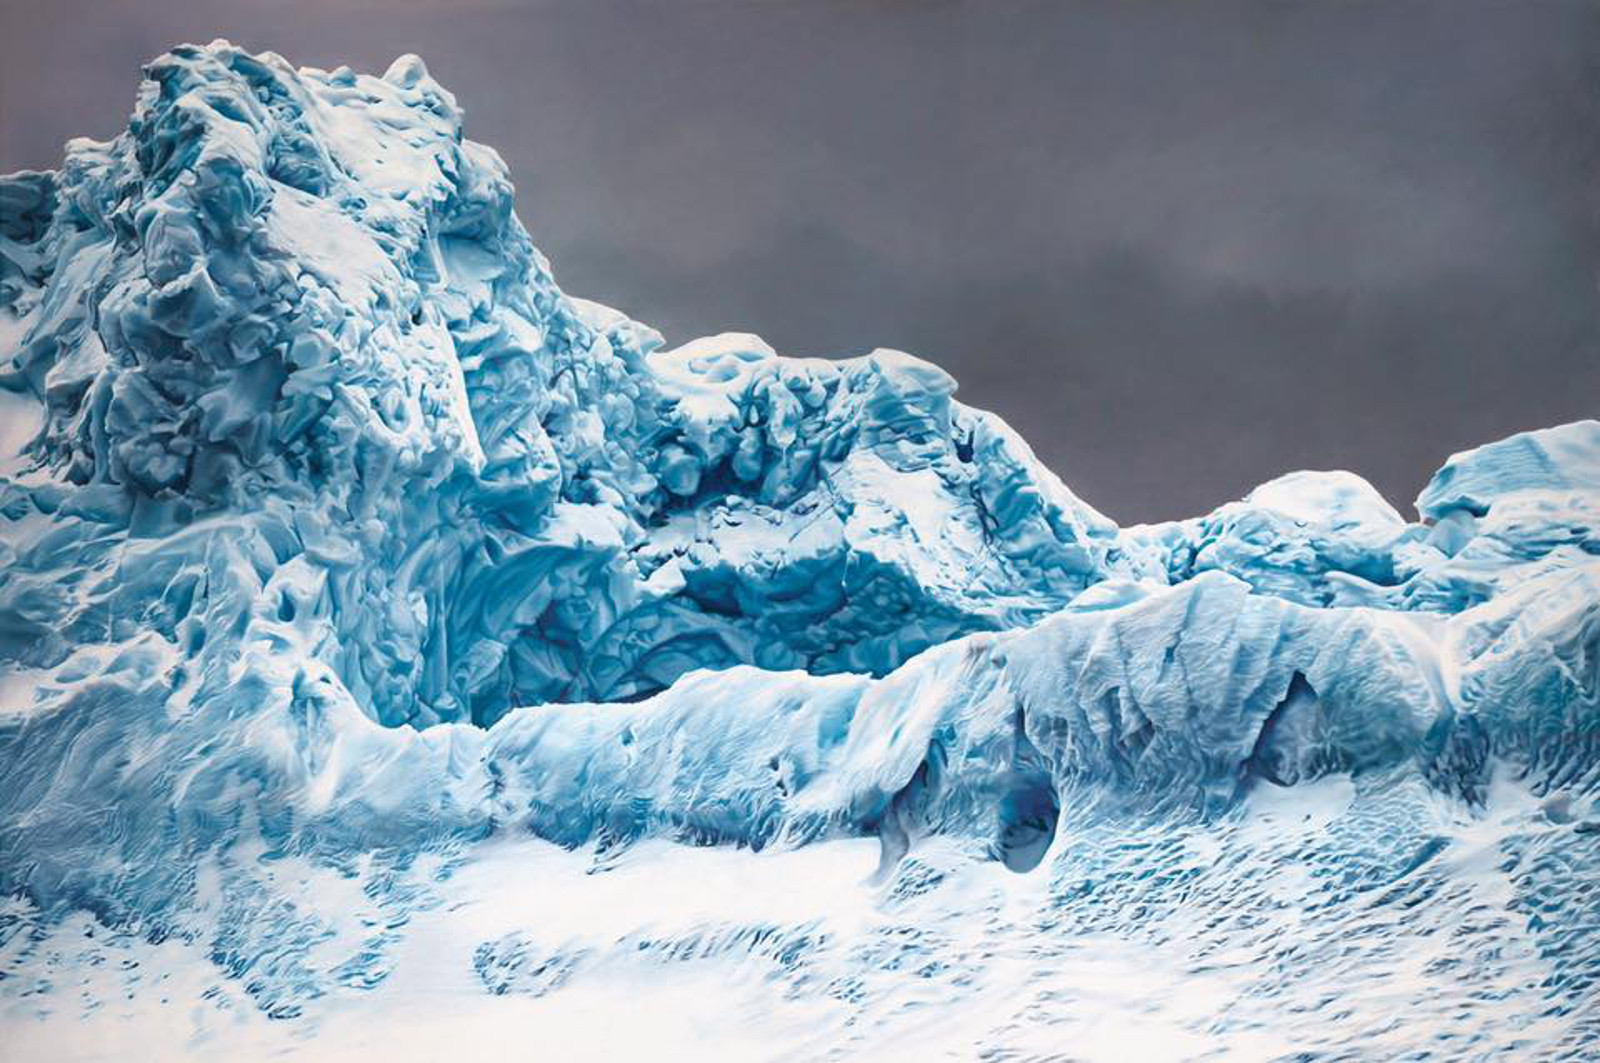 These Hyperrealistic Drawings of Glaciers Will Make You Wake Up and Act to Save the Planet